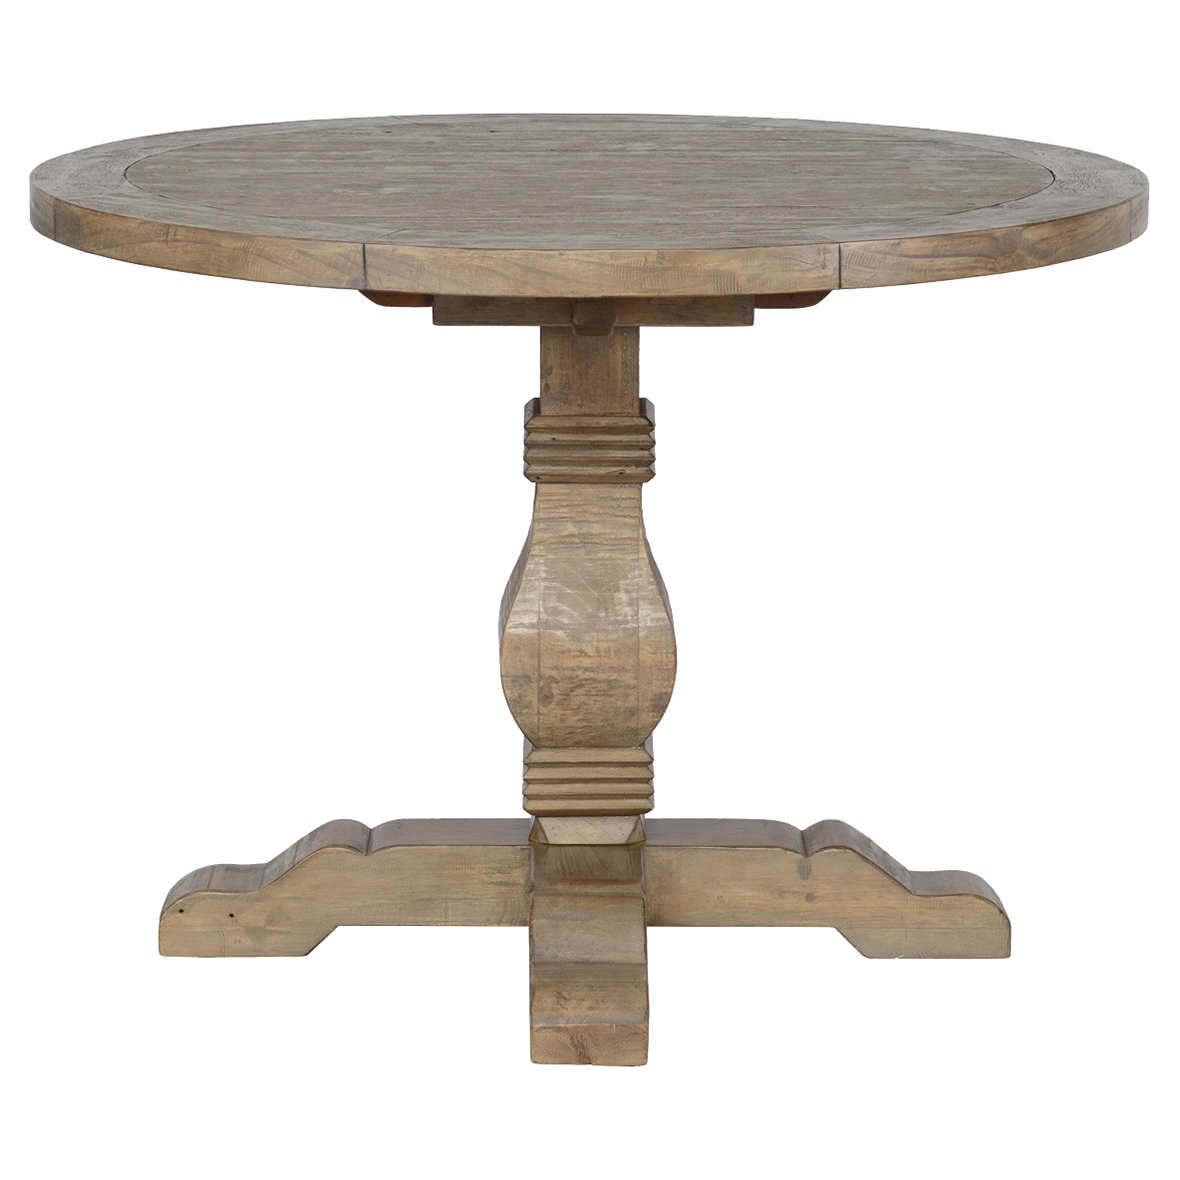 Liam Rustic Lodge Brown Distressed Solid Pine Round Dining Table - 42D